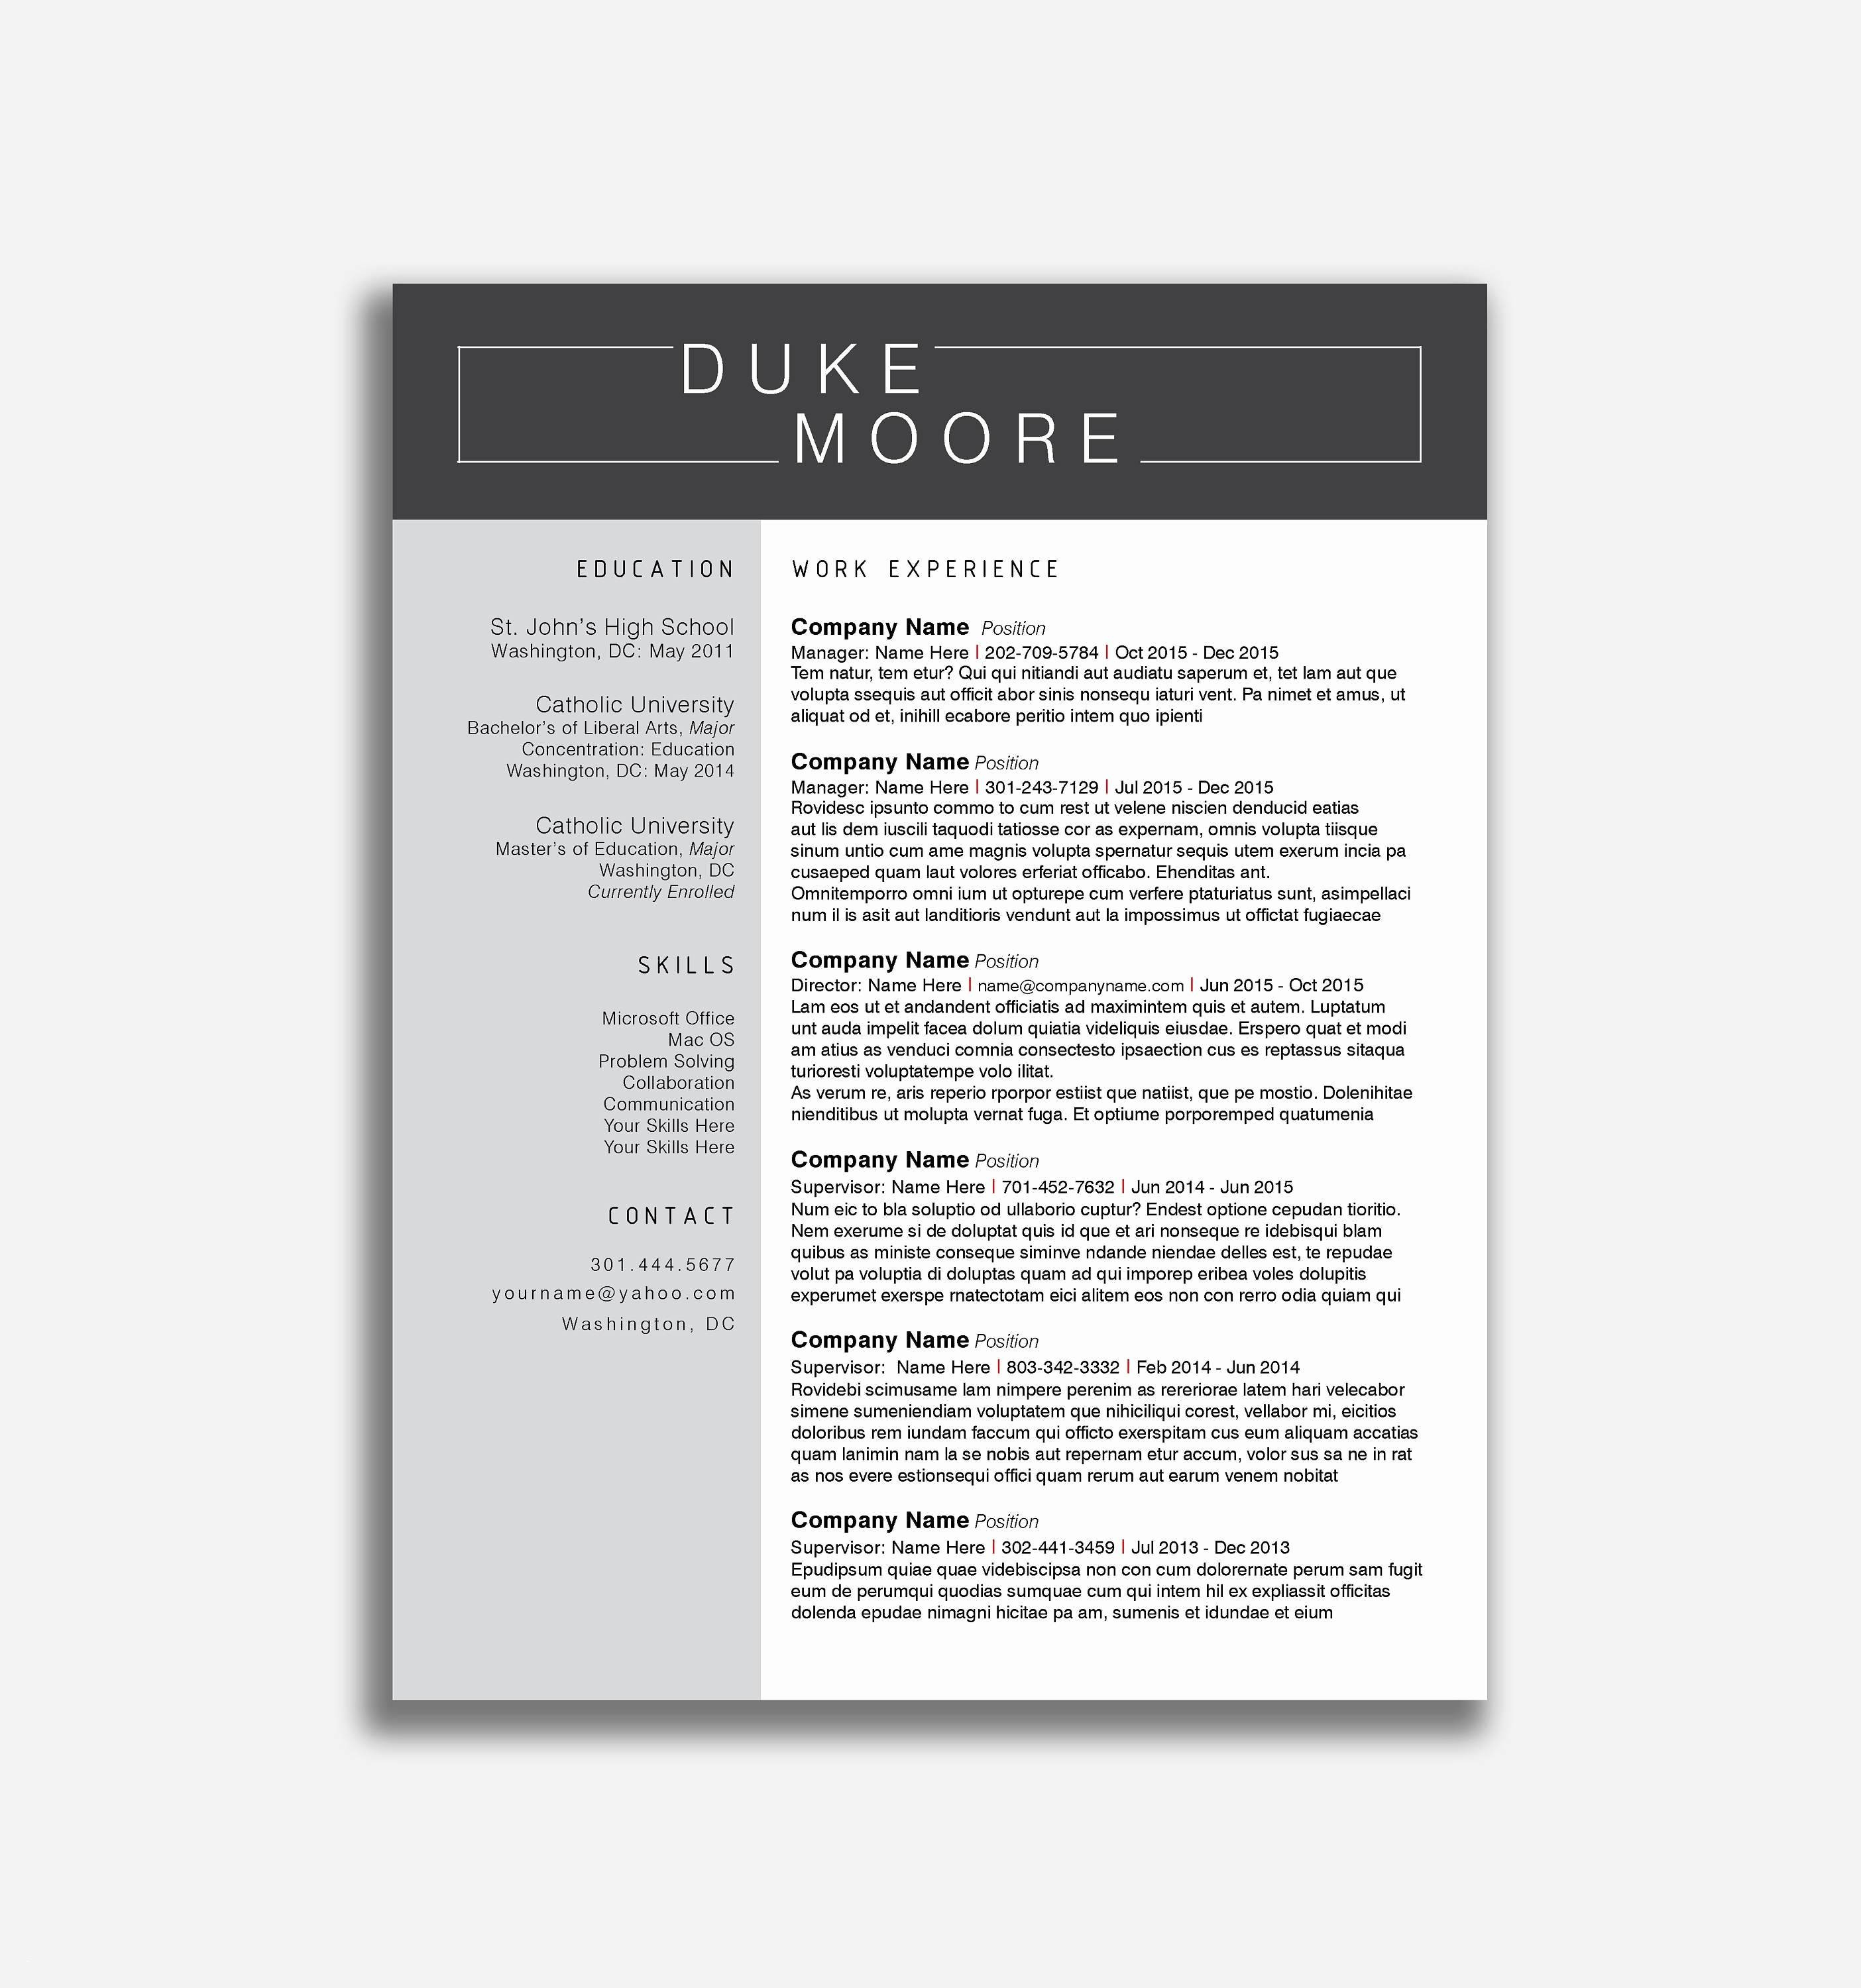 Acting Resume Template 2017 - Simple Resume Template Download Awesome Acting Resume format New